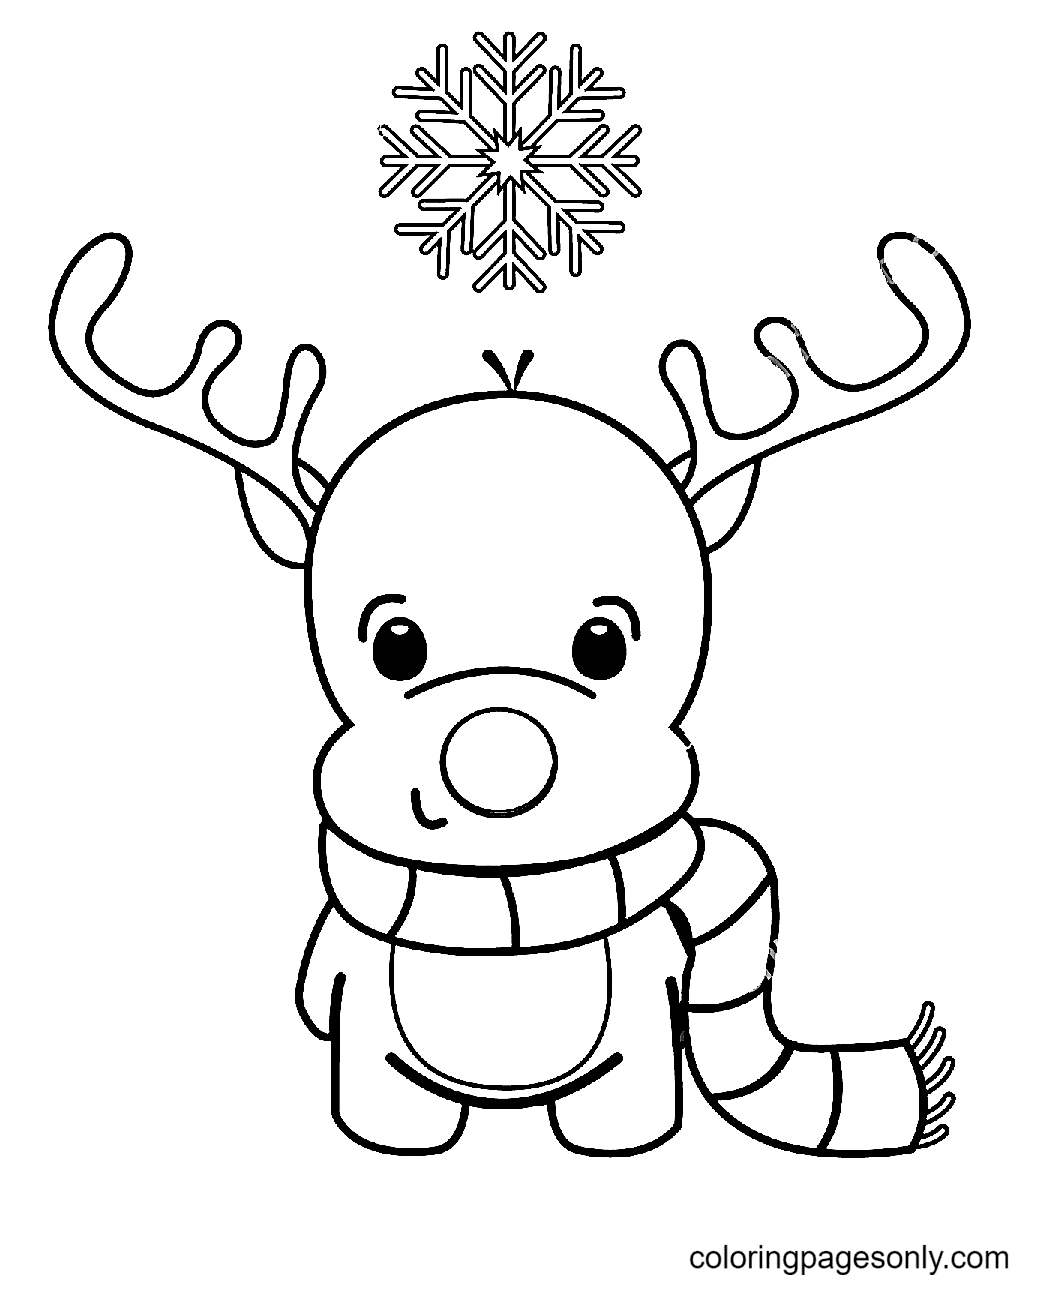 Little Reindeer with a Scarf Coloring Page